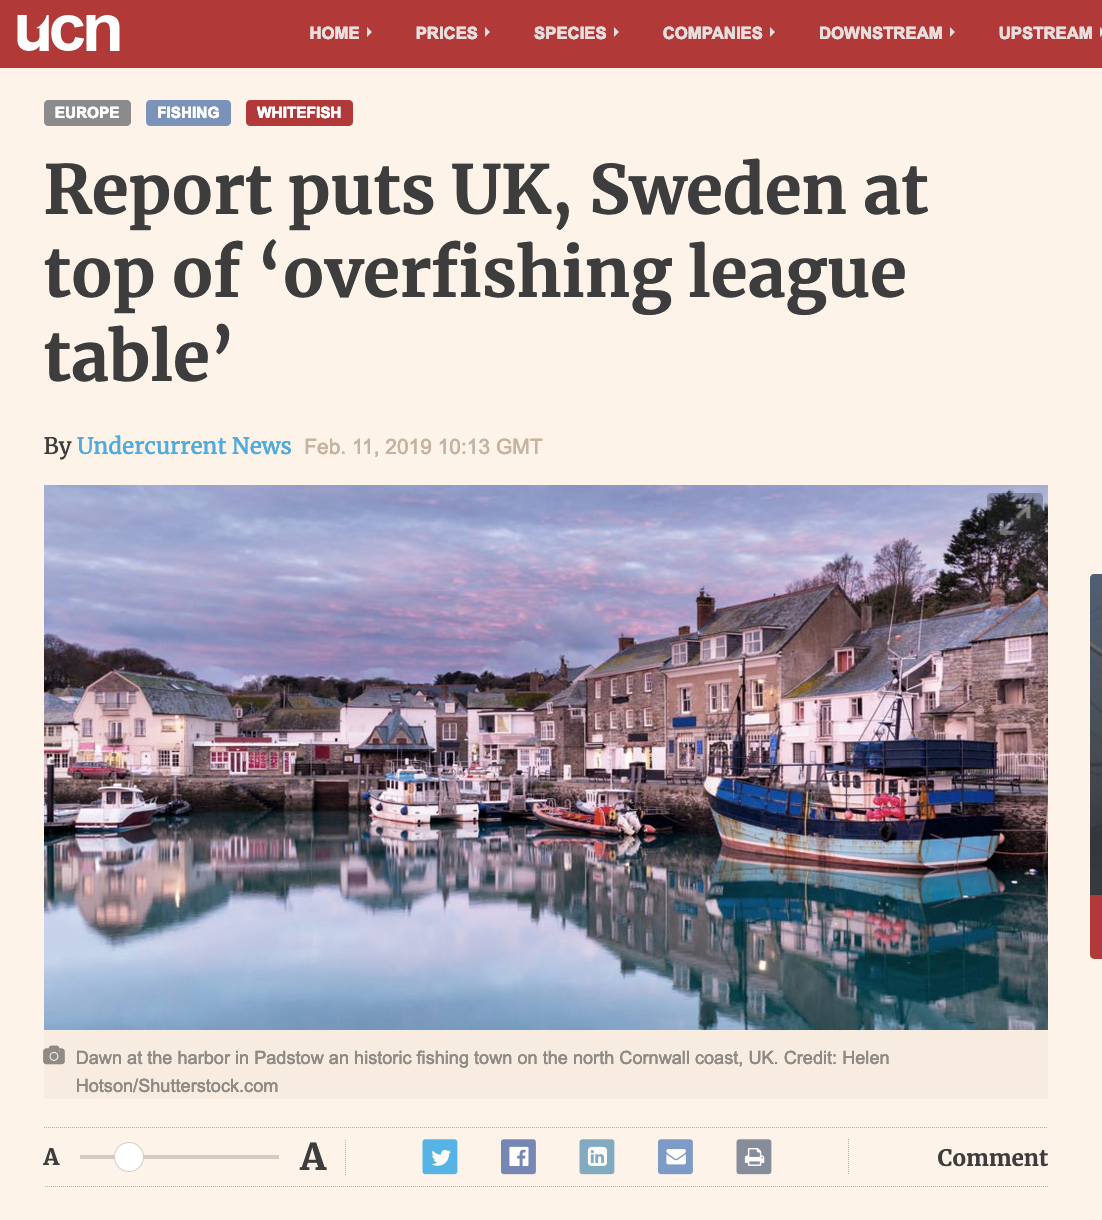 Report puts UK, Sweden at top of 'overfishing league table'